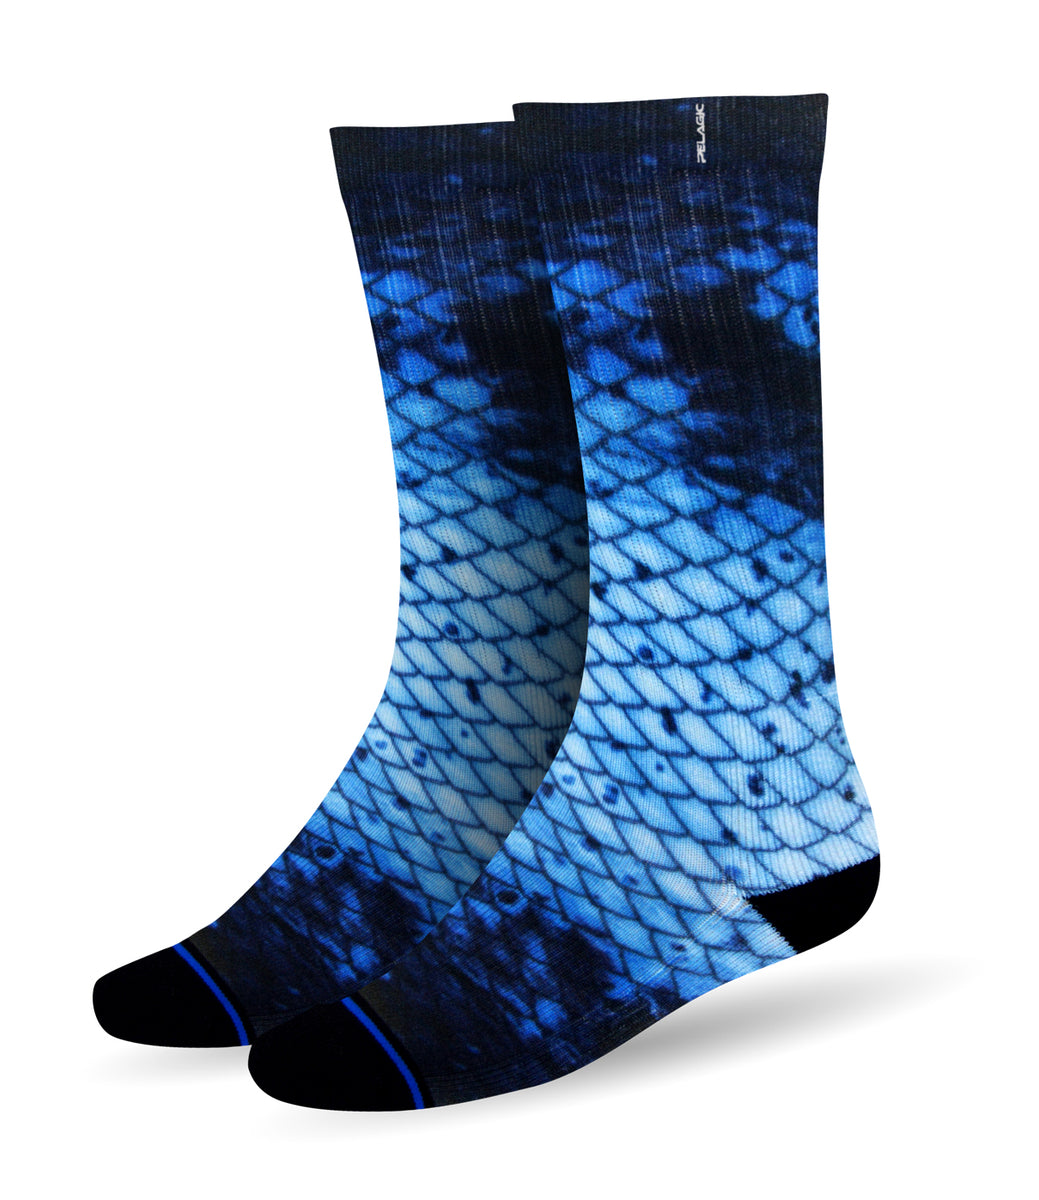 Proform Socks Big Image - 1